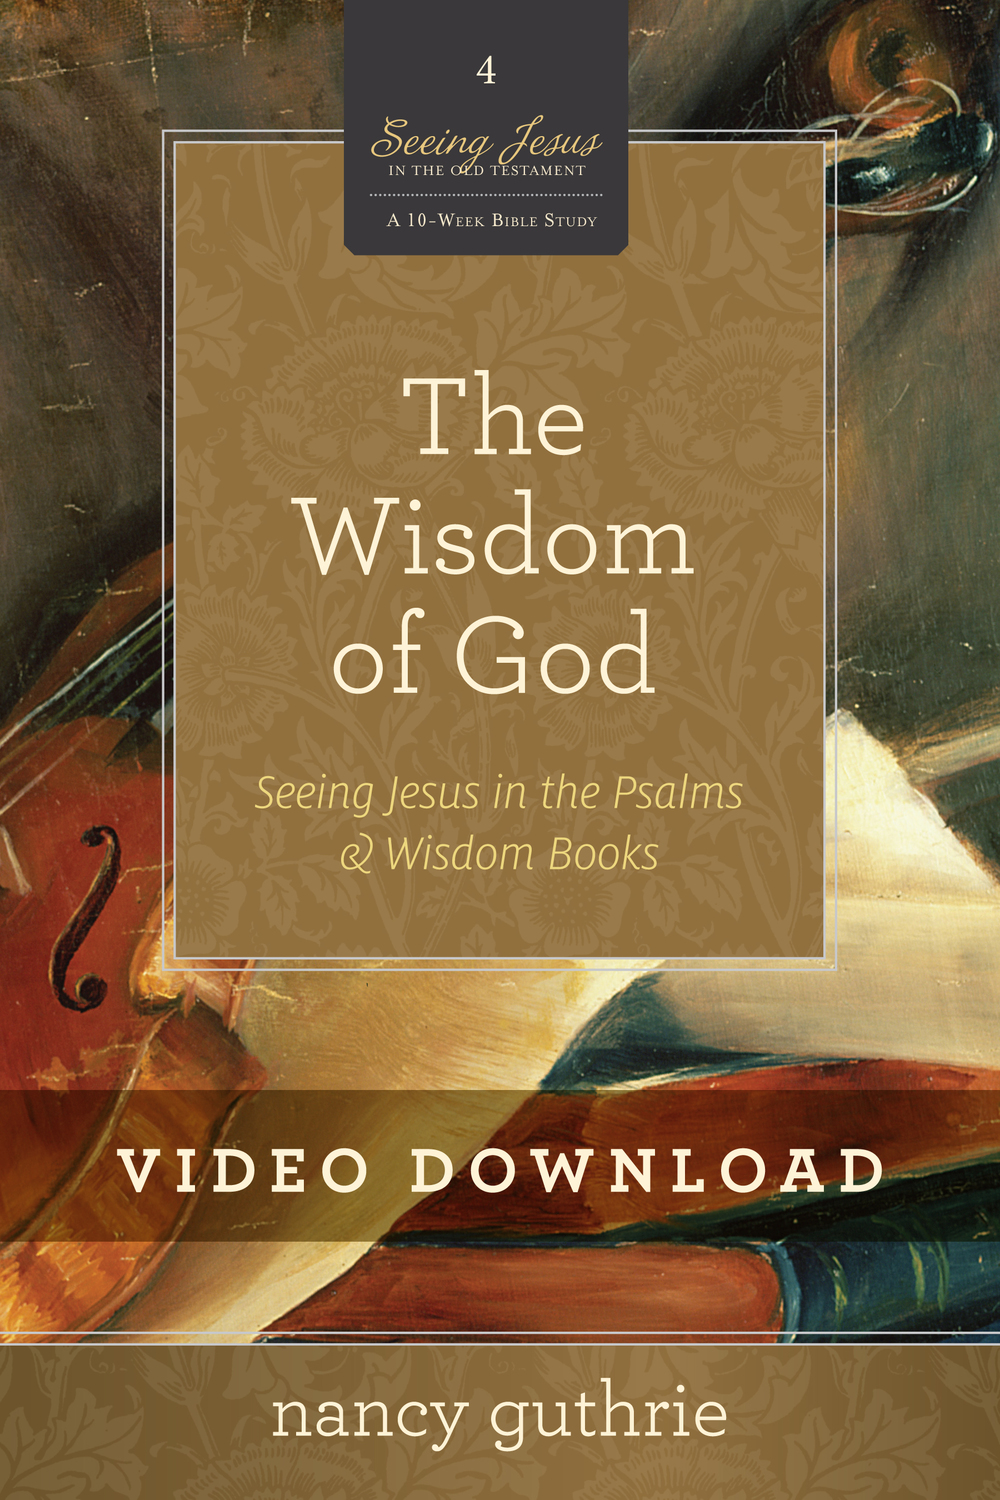 The Wisdom of God Video Session 3 Download